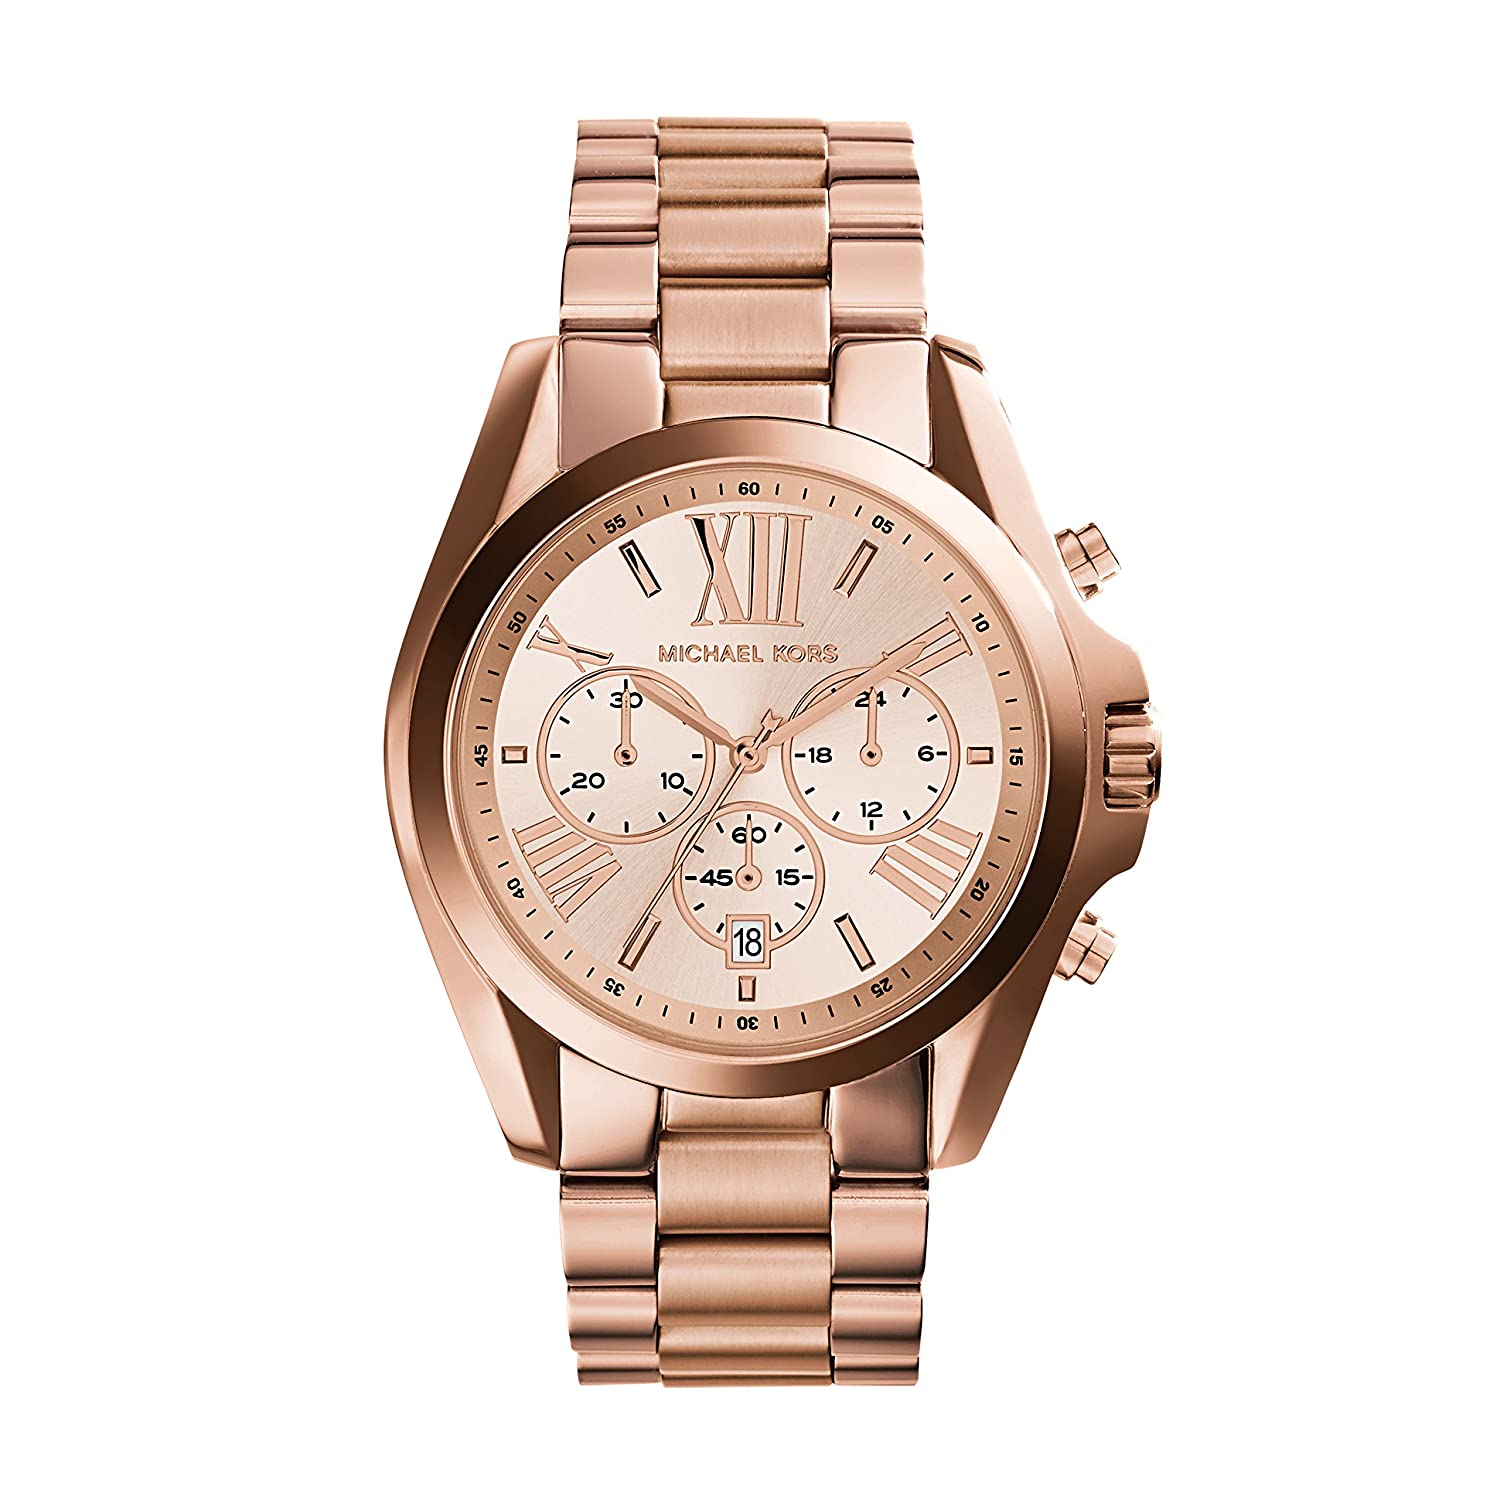 59181d4e6602c Amazon.com  Michael Kors Roman Numeral Watch MK5503 Rose Gold  Michael Kors   Watches